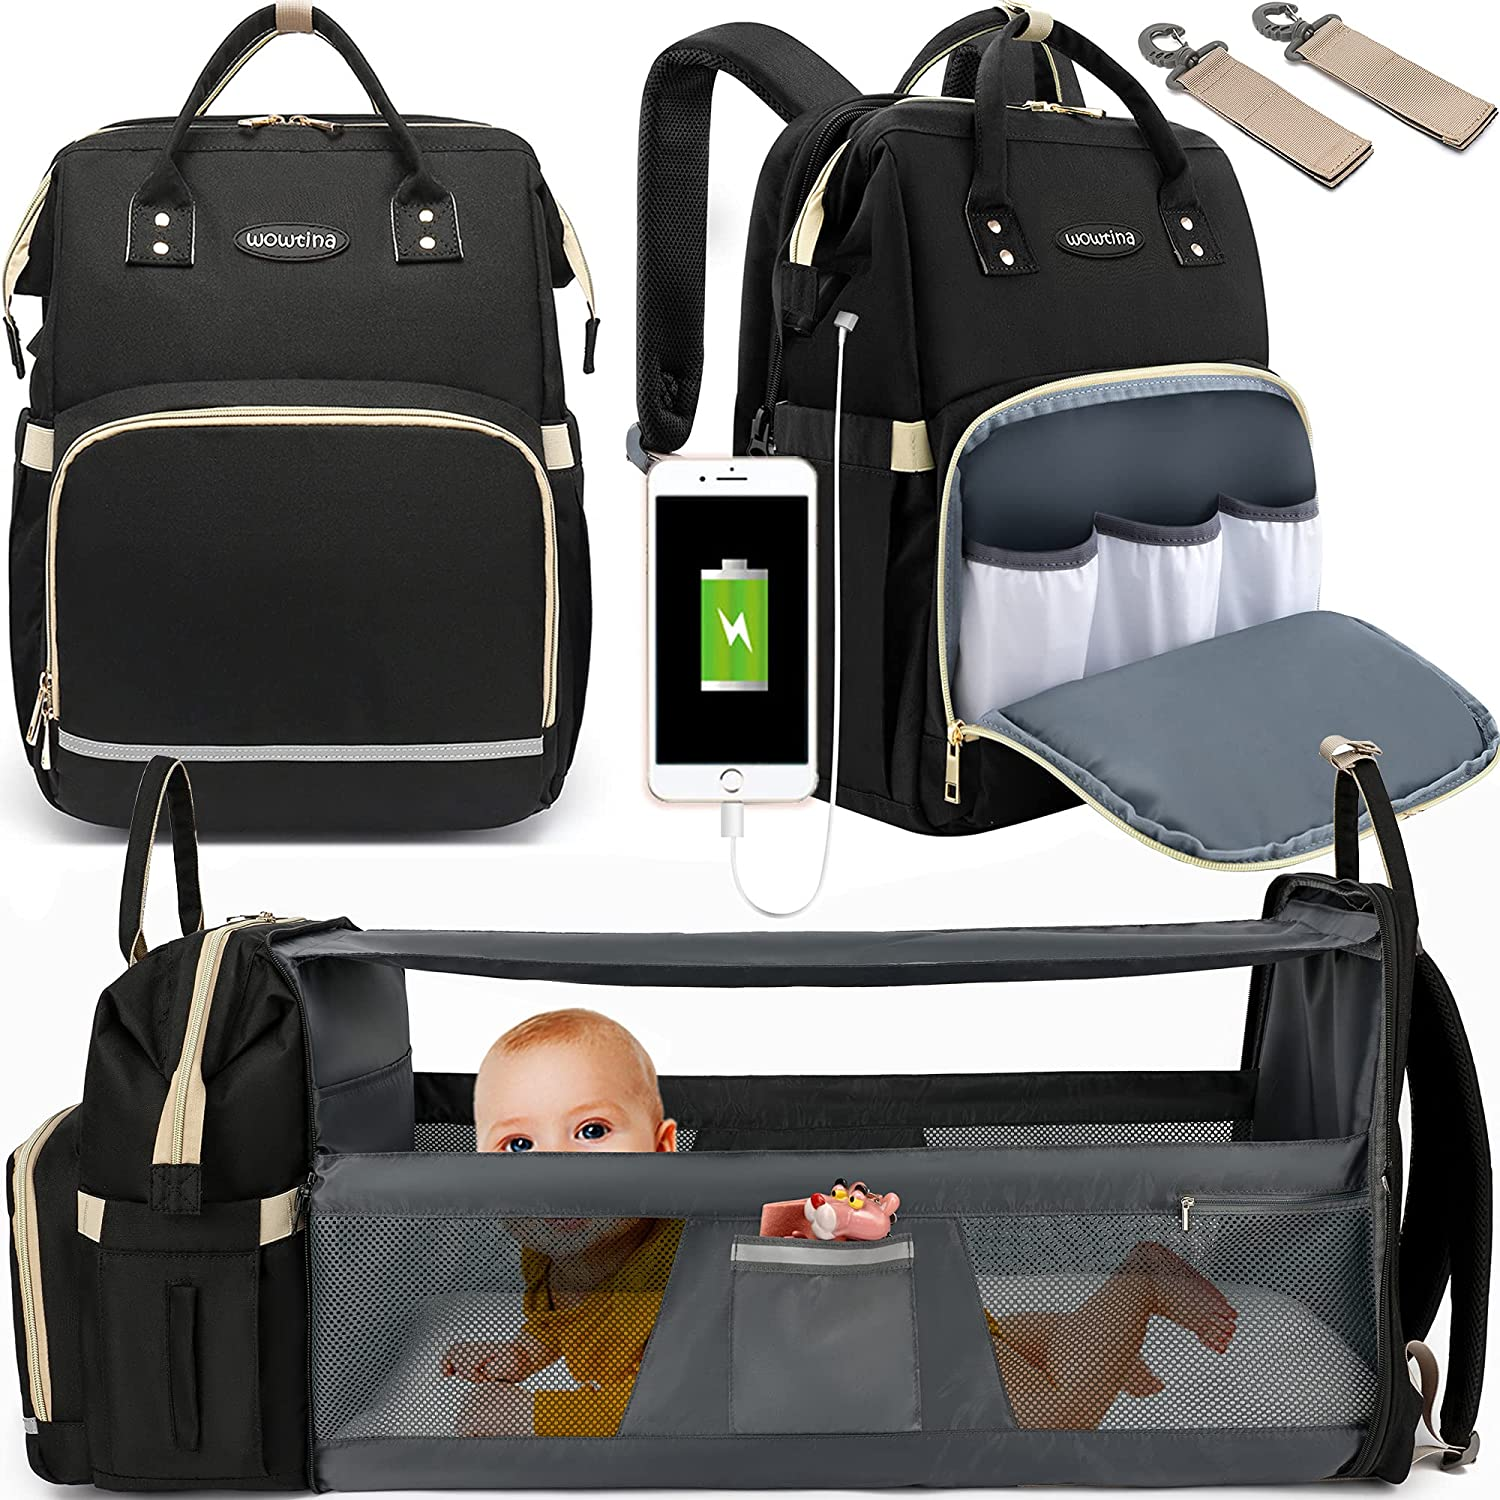 Baby Diaper Bag Backpack, WOWTINA Diaper Bag with Changing Station, Diaper Bags for Baby Boy Girl, Baby Registry Search Shower Gifts New Mom Gifts for Women Large 3 in 1 Diper Bag with Bassinet Black